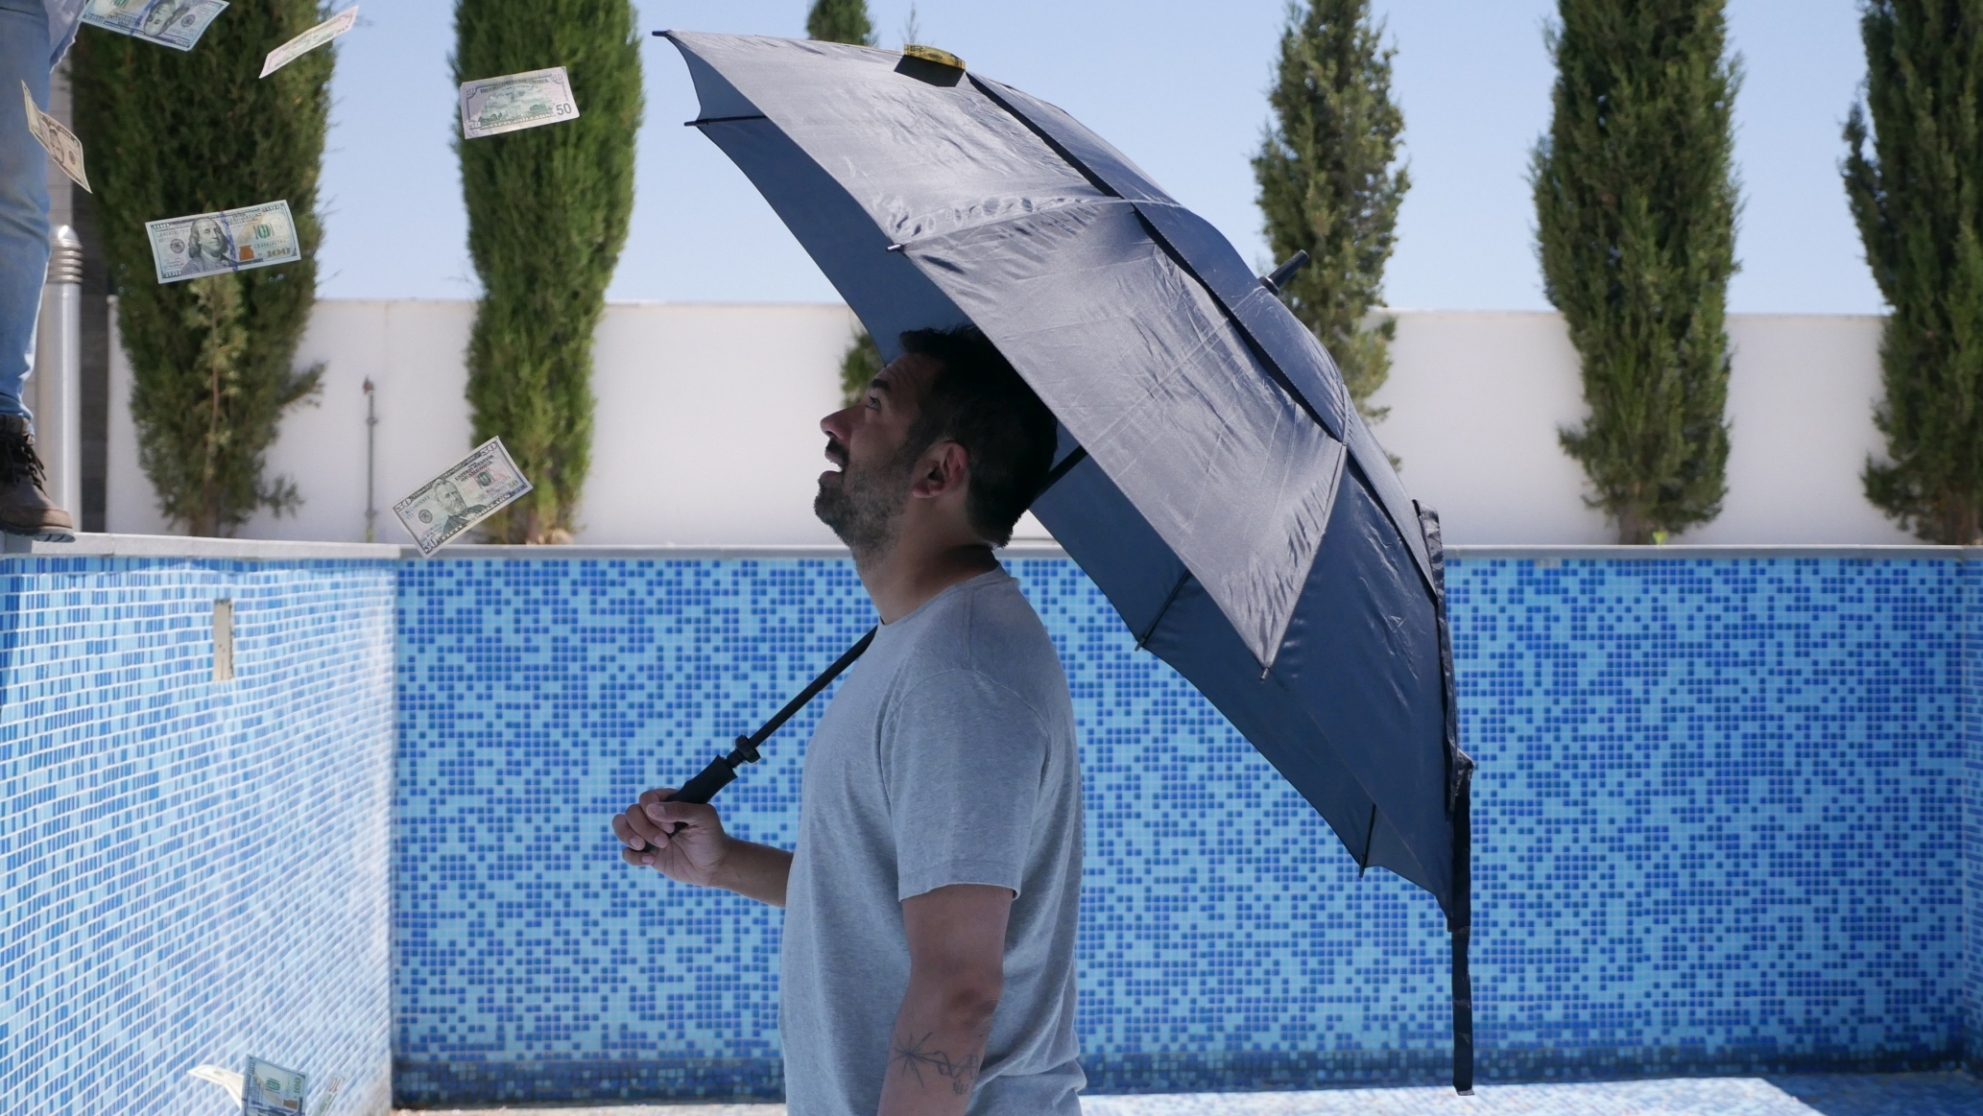 This Giant Beast That Is the Global Economy: un momento con Kal Penn